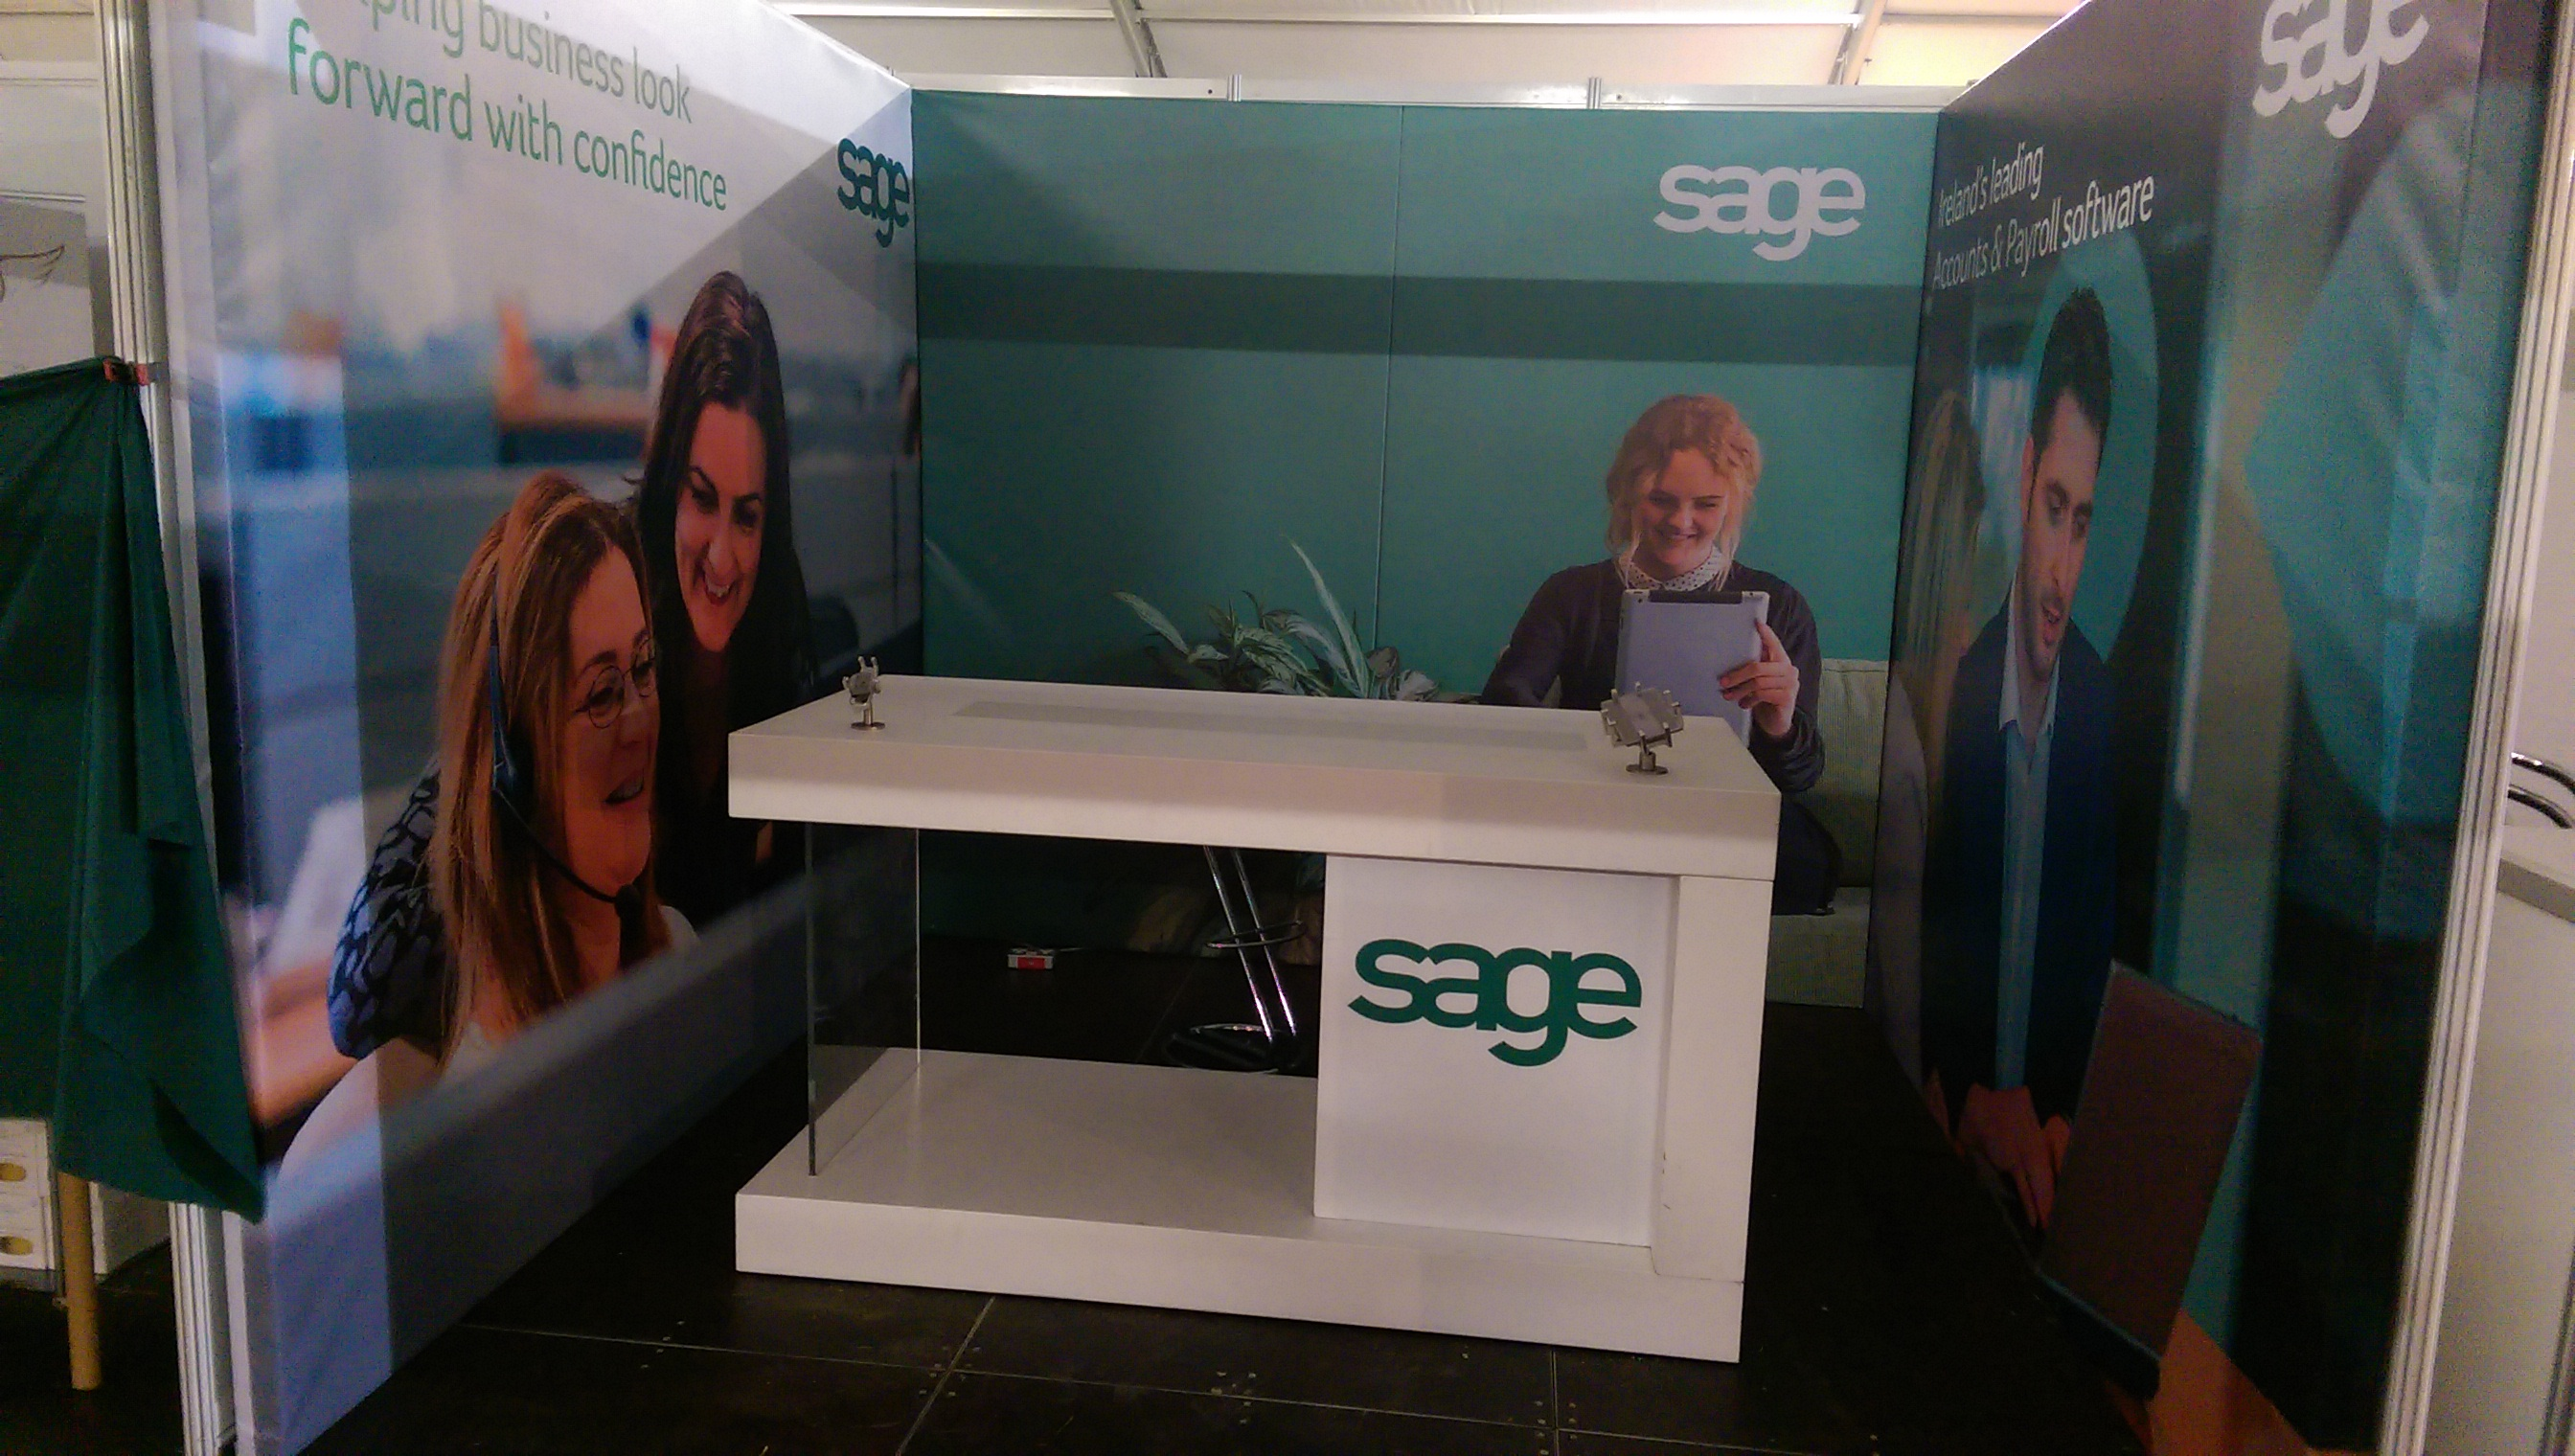 Counter and Backdrop for Sage